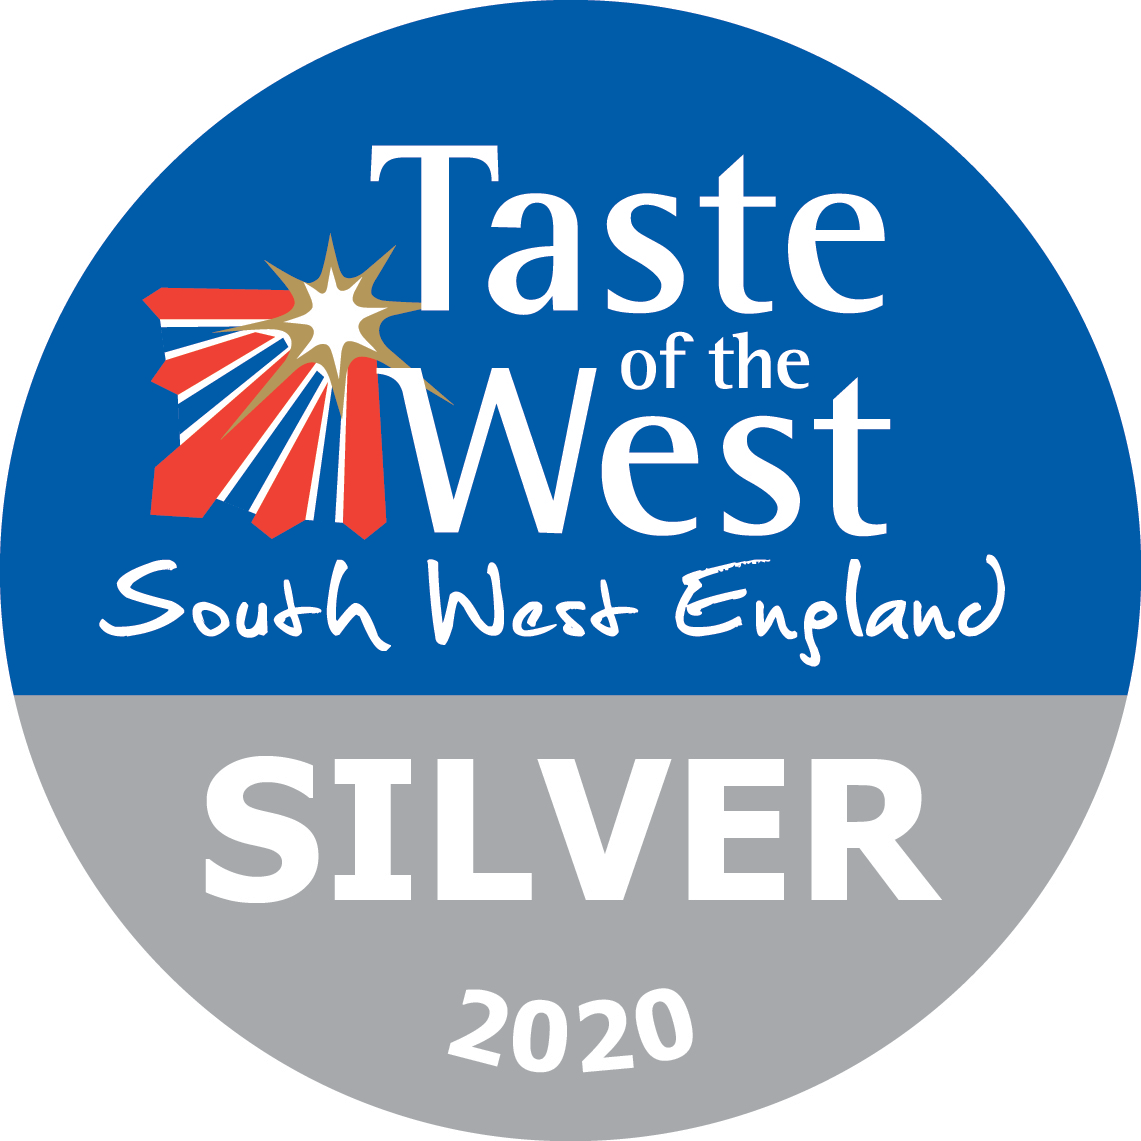 2020 Silver Taste of the West Award